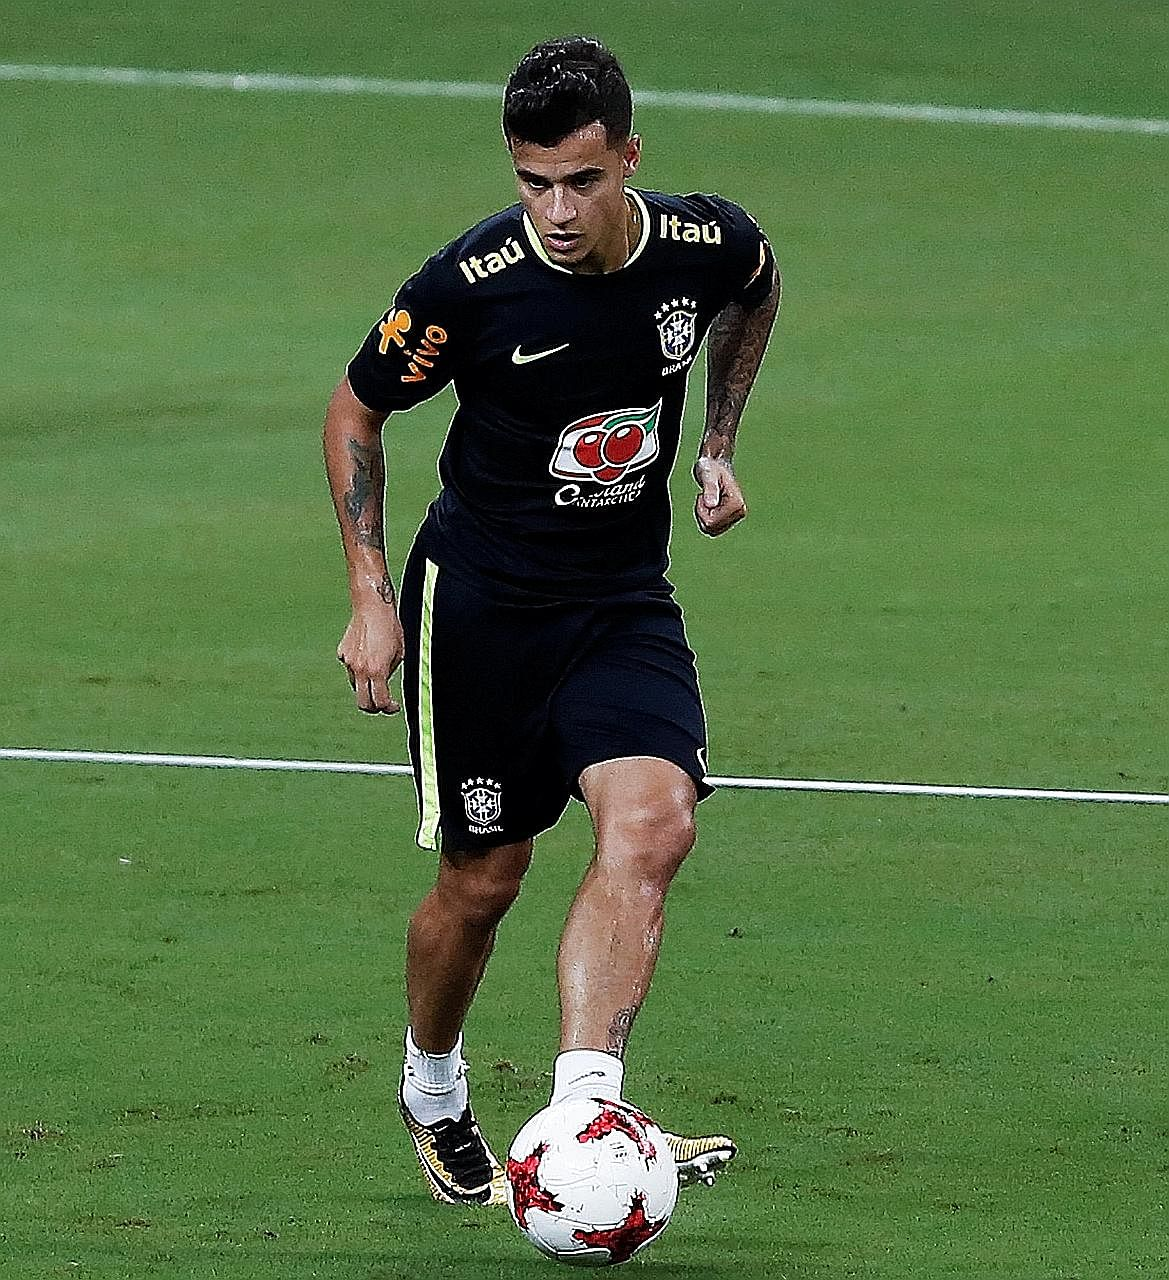 Philippe Coutinho training ahead of Brazil's World Cup qualifier against Colombia tomorrow. Having failed to obtain a move to Barcelona, he will need to work his way back into Liverpool's first team as they have impressed without him.